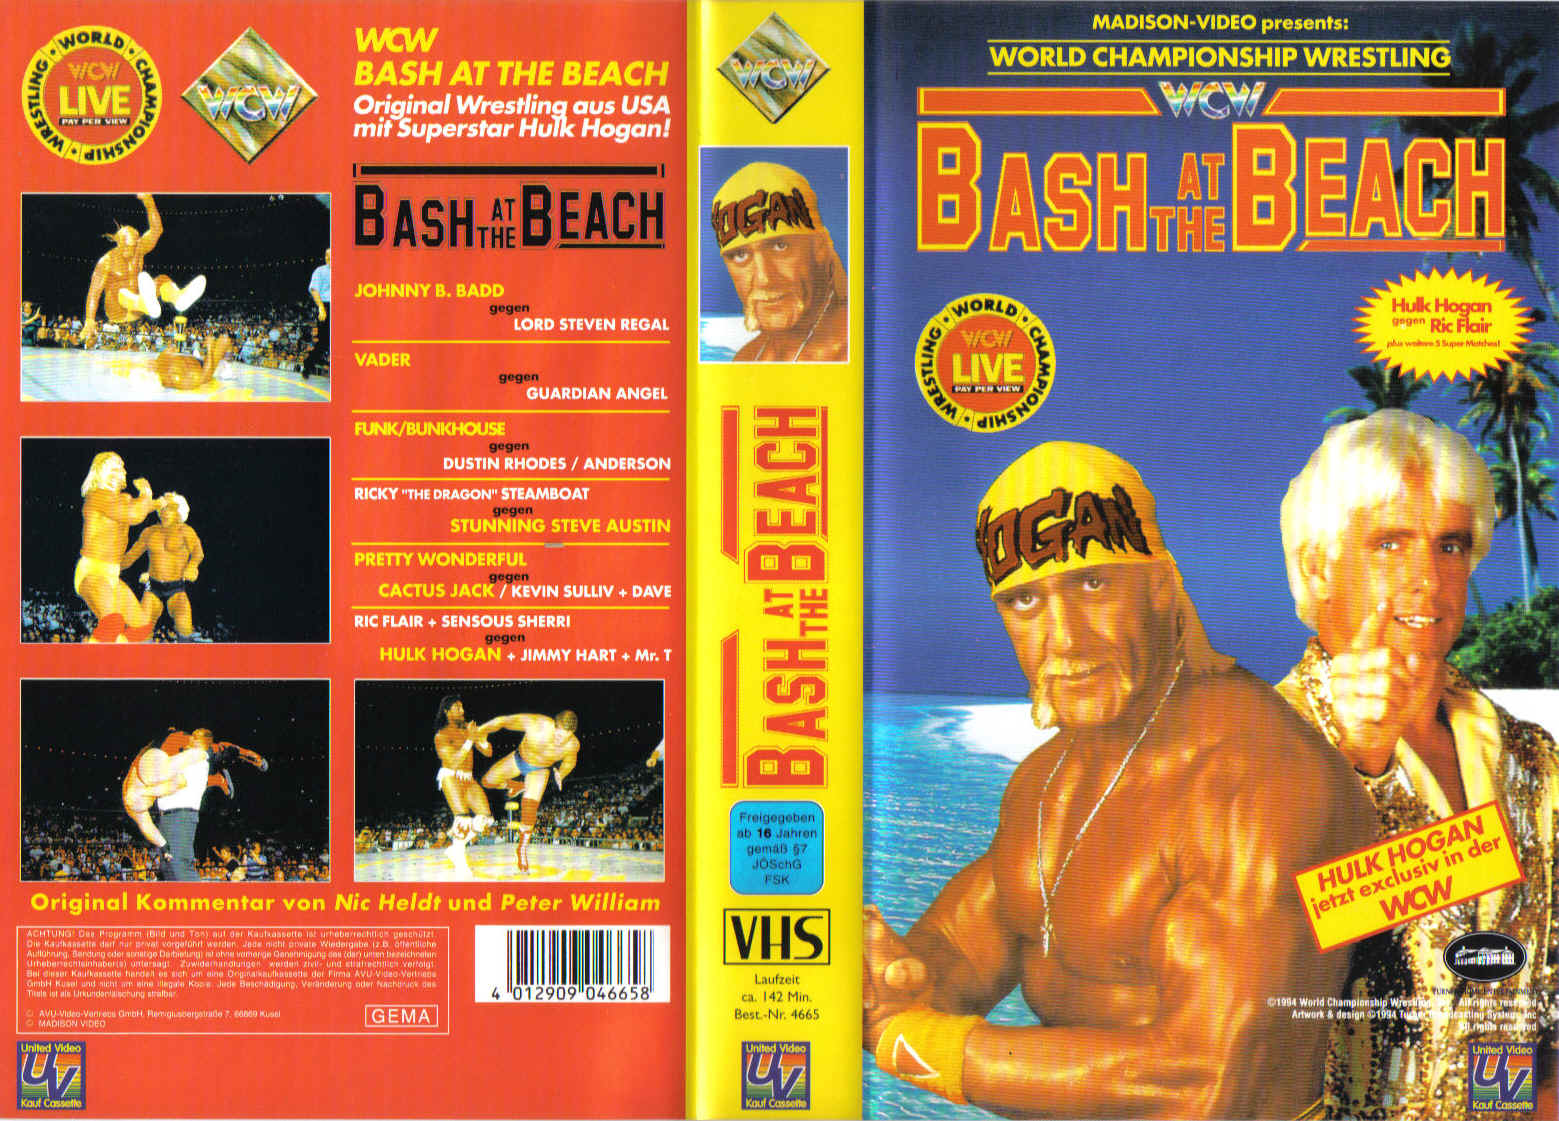 Bash at the Beach